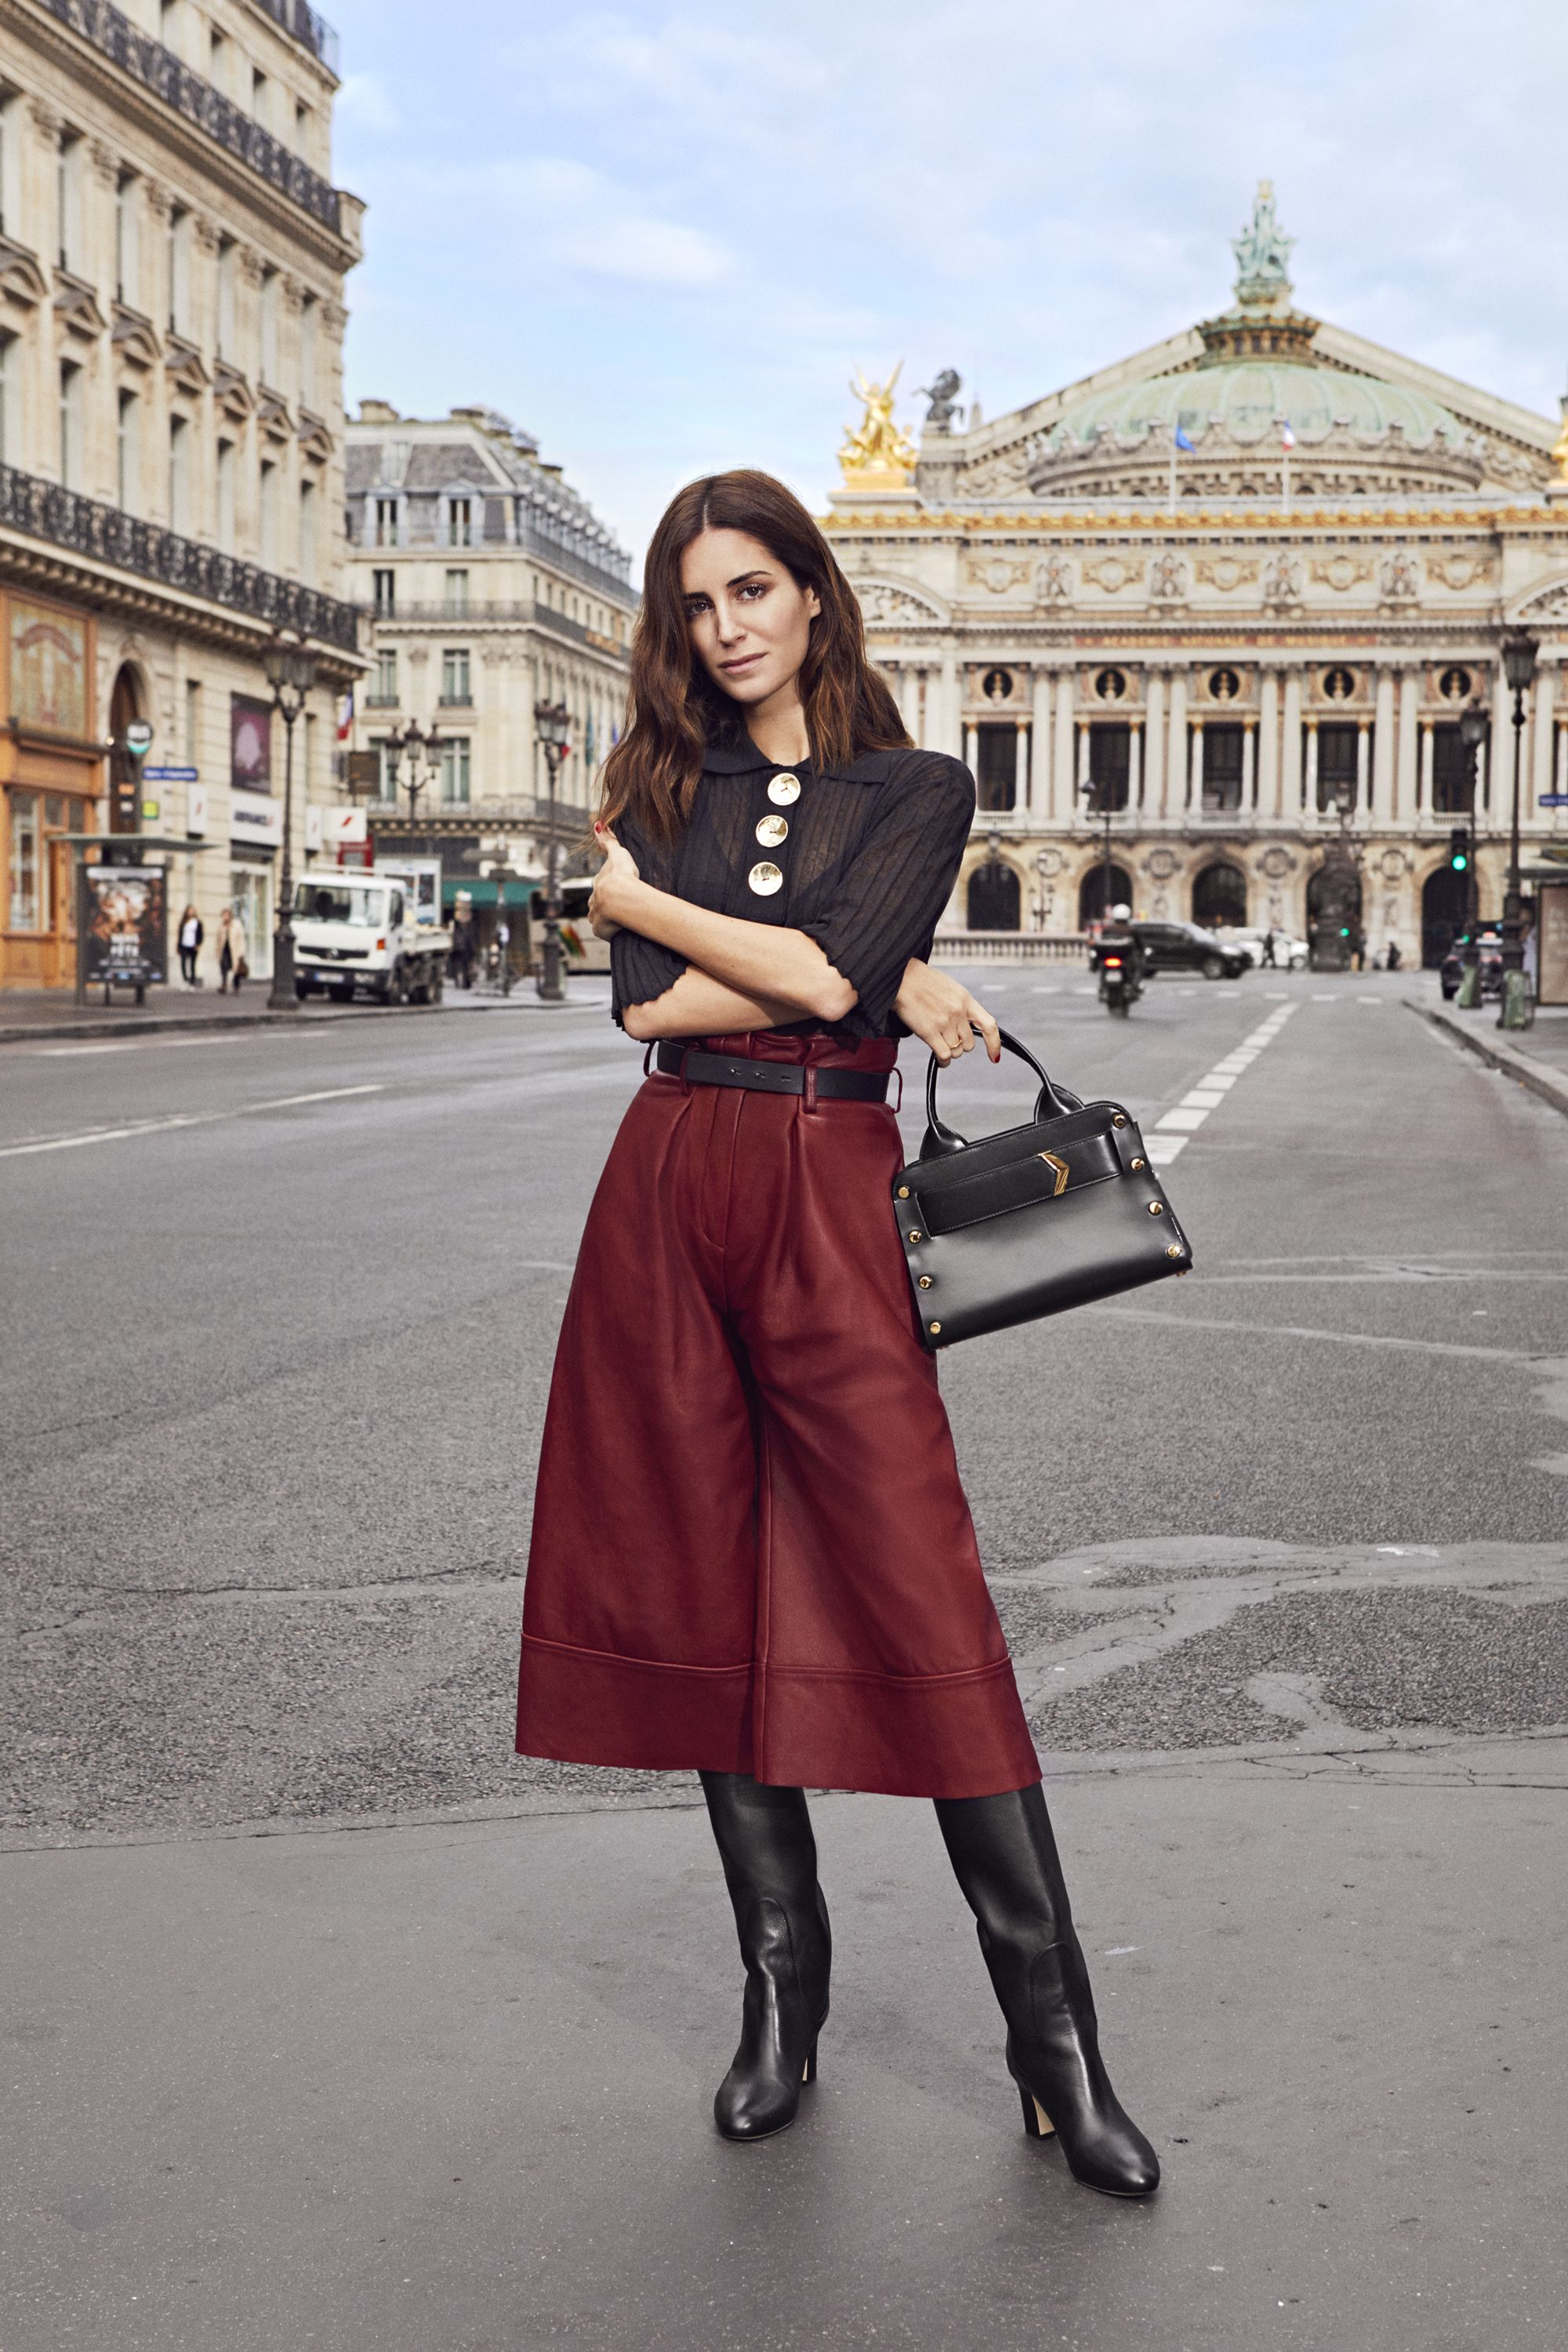 db0a453b481 Gala Gonzalez wearing MINERVA 65 Black Smooth Leather Pull On Boots and  carrying the Jimmy Choo LOCKETT TOTE Black Spazzolato Leather Tote Bag